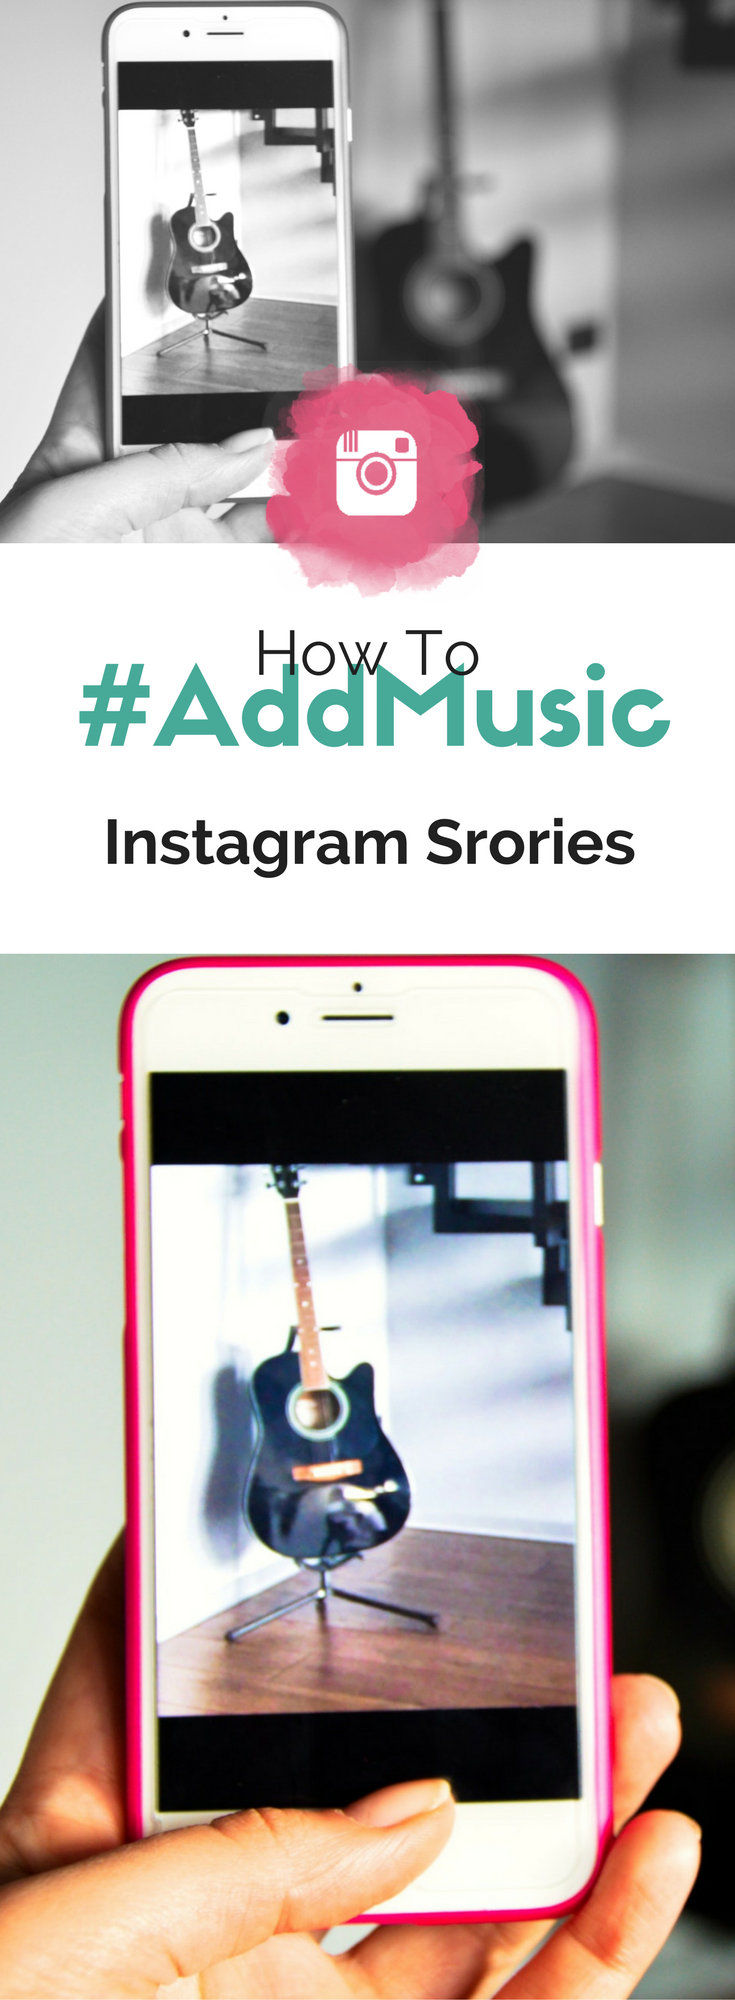 How To Add Music On Insta Stories Add Music From Your Phone And Choose Any Song You Like Create The Best Instag For You Song Best Instagram Stories Add Music